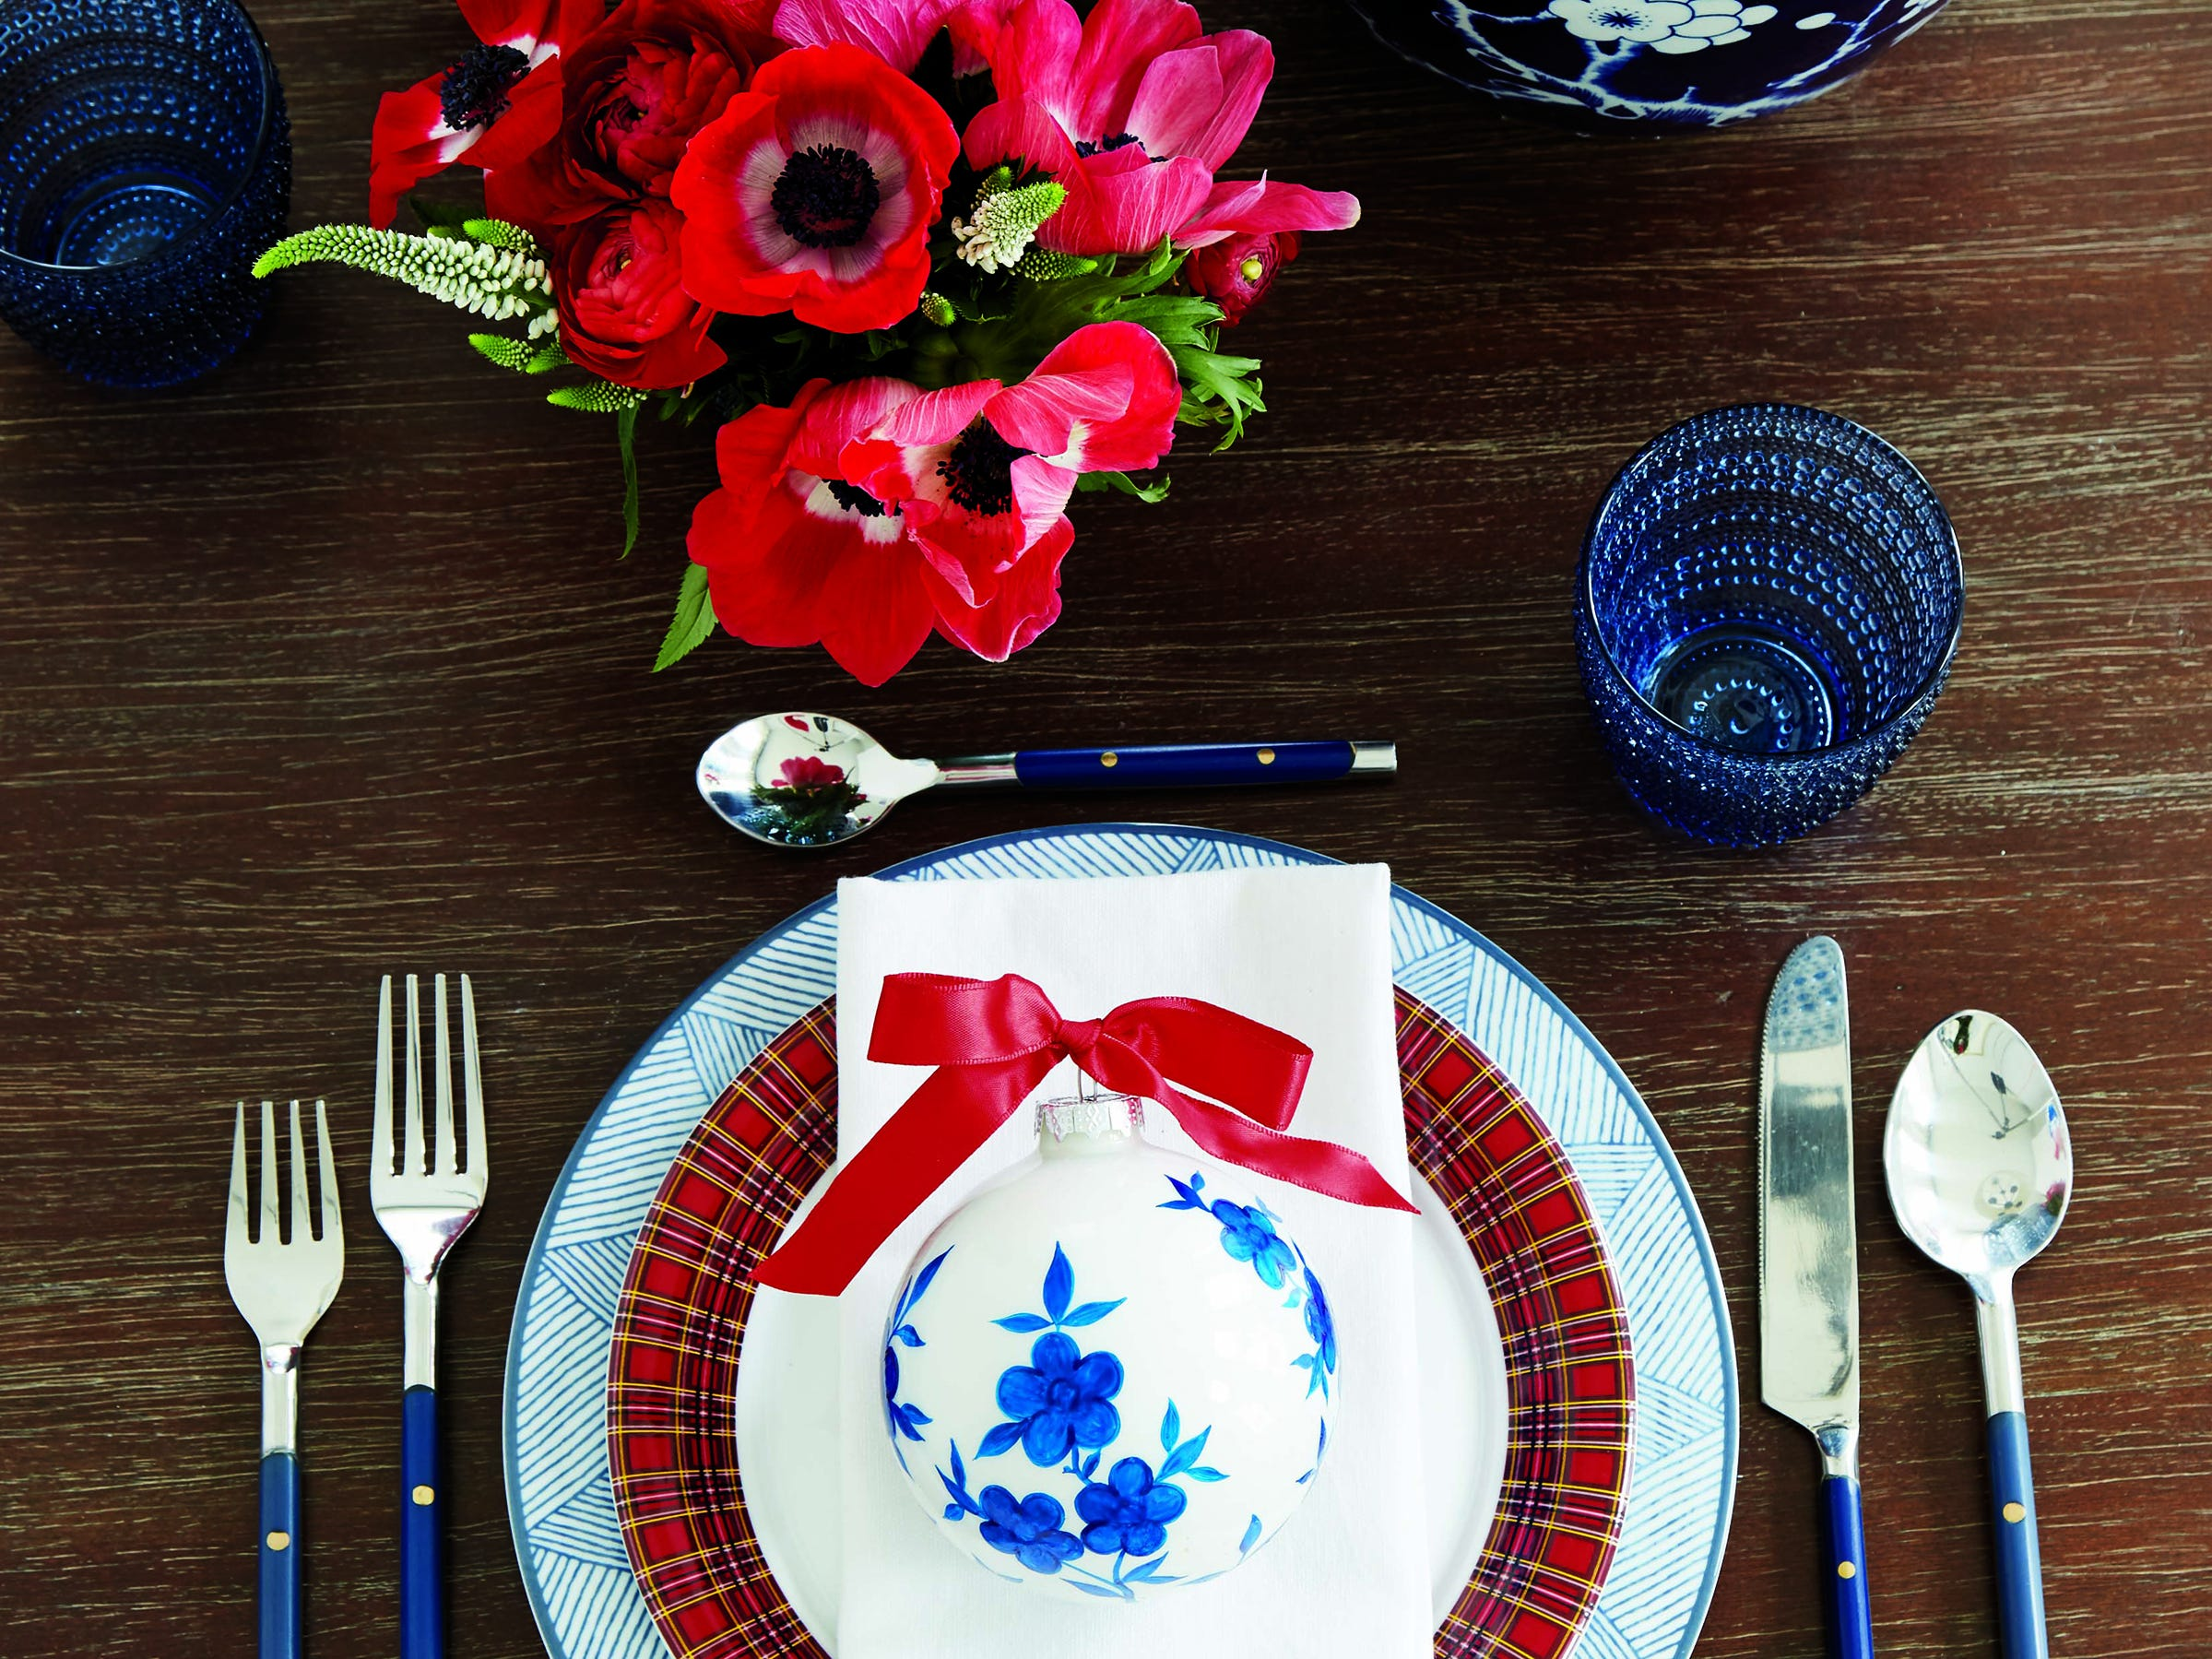 Suzanne Kasler strikes a cozy note with her teaming of a blue-and-white geometric plate from Bunny Williams with her own red plaid salad plate (from Ballard Designs), topped with a classic blue-and-white patterned ornament. She pulls the blue into flatware and glasses, and the red into amaryllis on the bare table. A touch of red whip stitching on pure white napkins adds a rustic note.